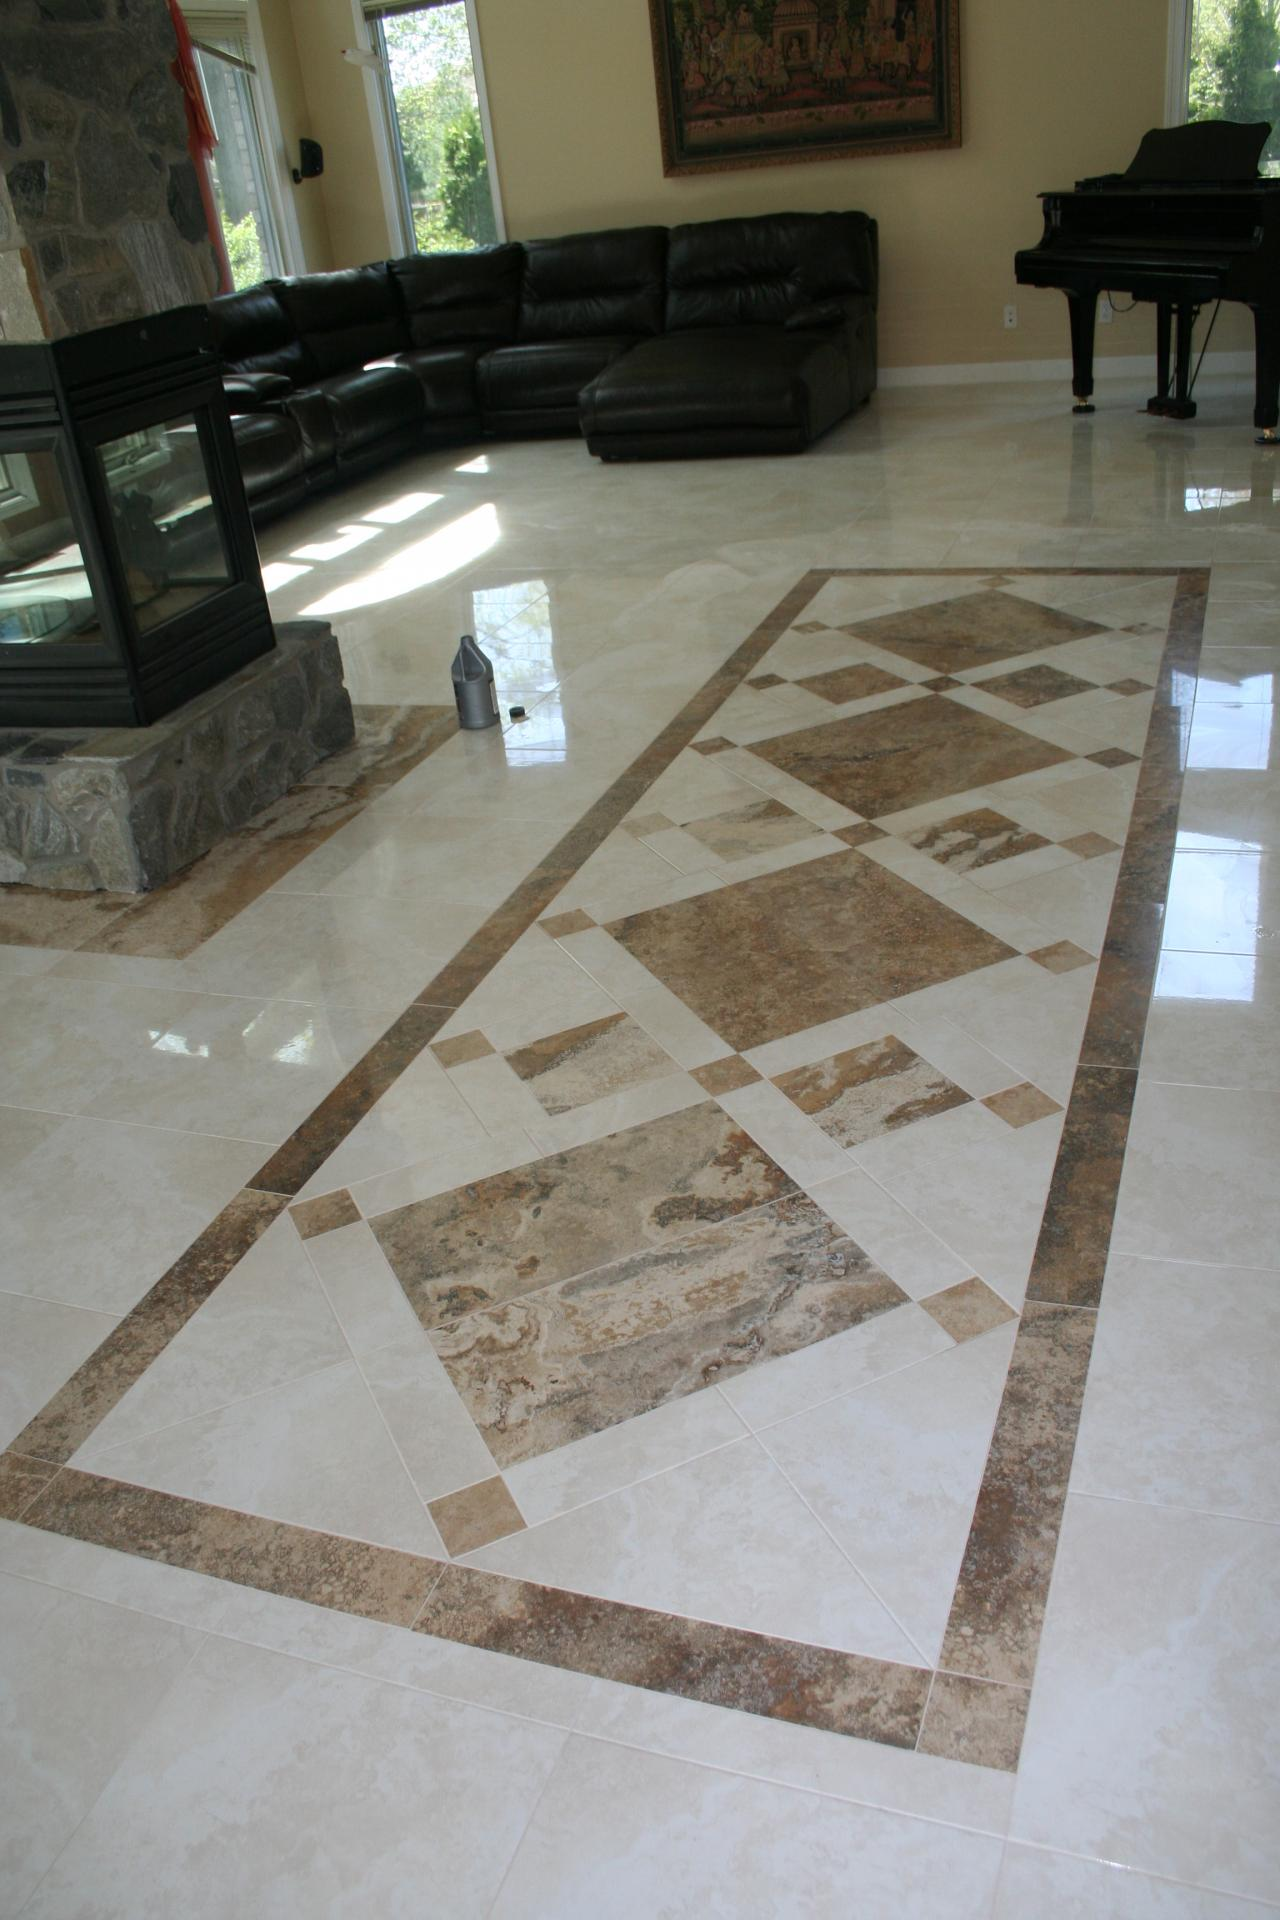 Nest homes construction floor and wall tile designs custom travertine inlay travertine custom design tile inlay large ceramic dailygadgetfo Image collections